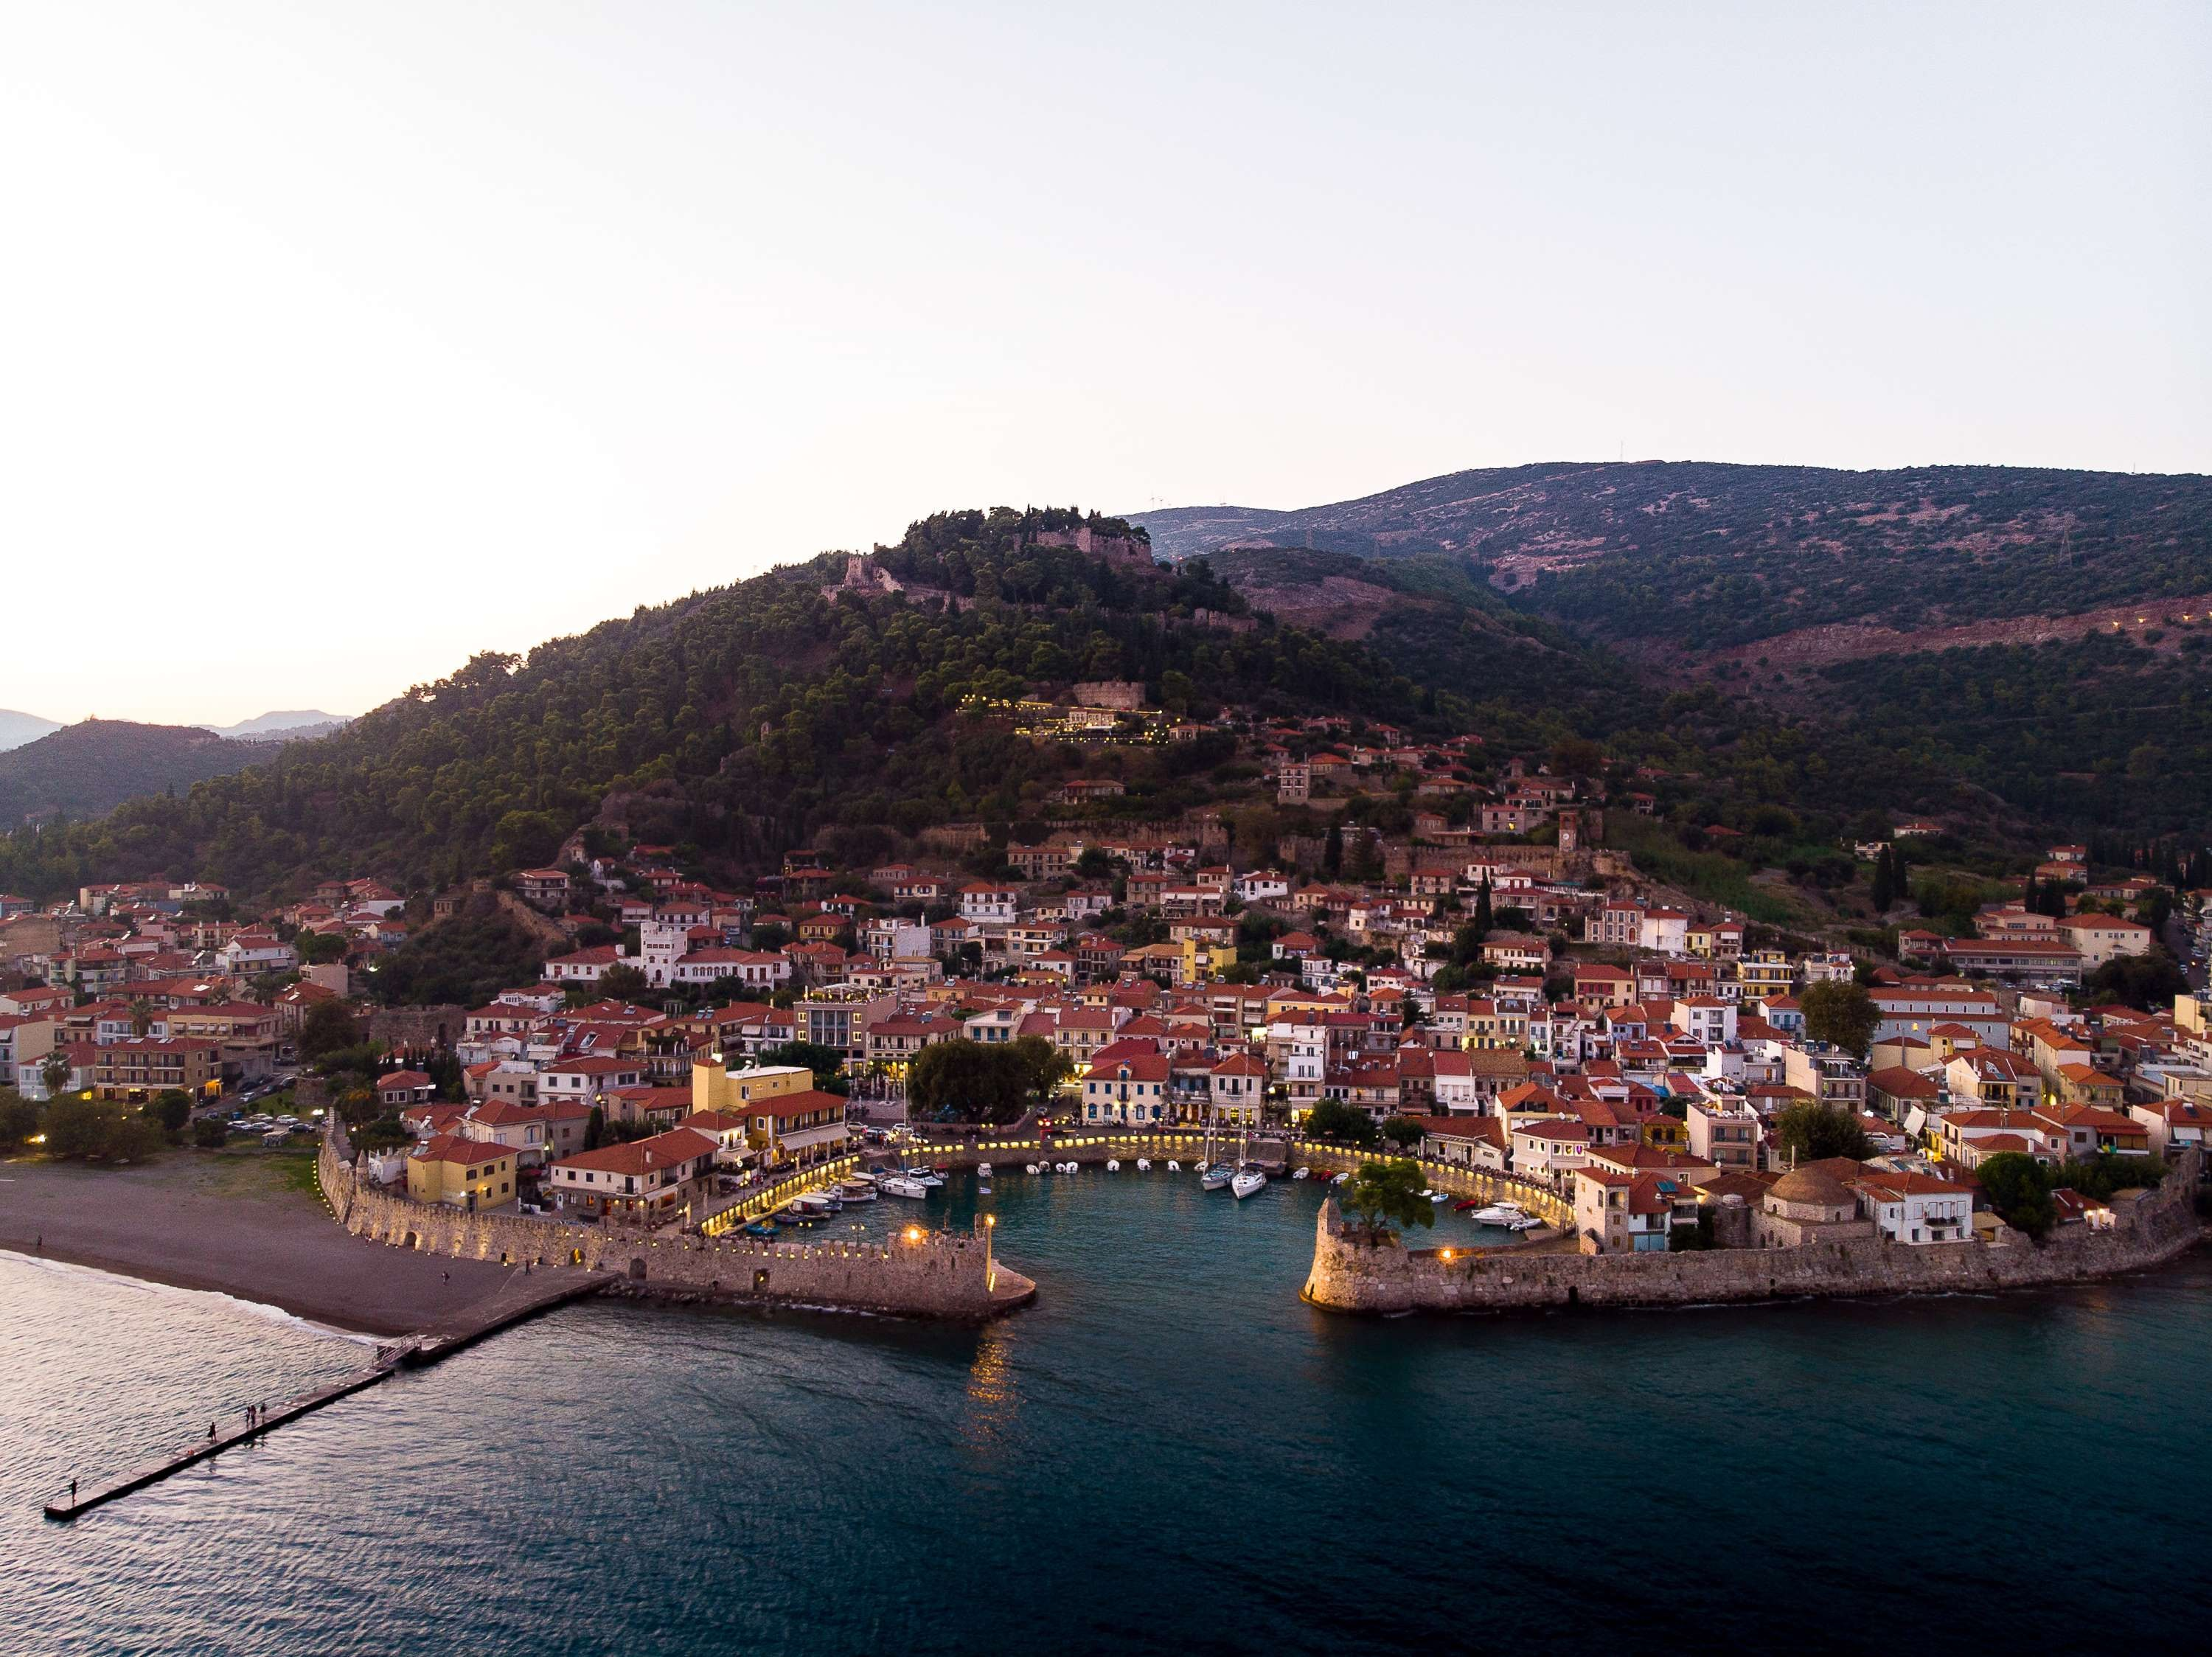 panoramic photography of buildings near body of water